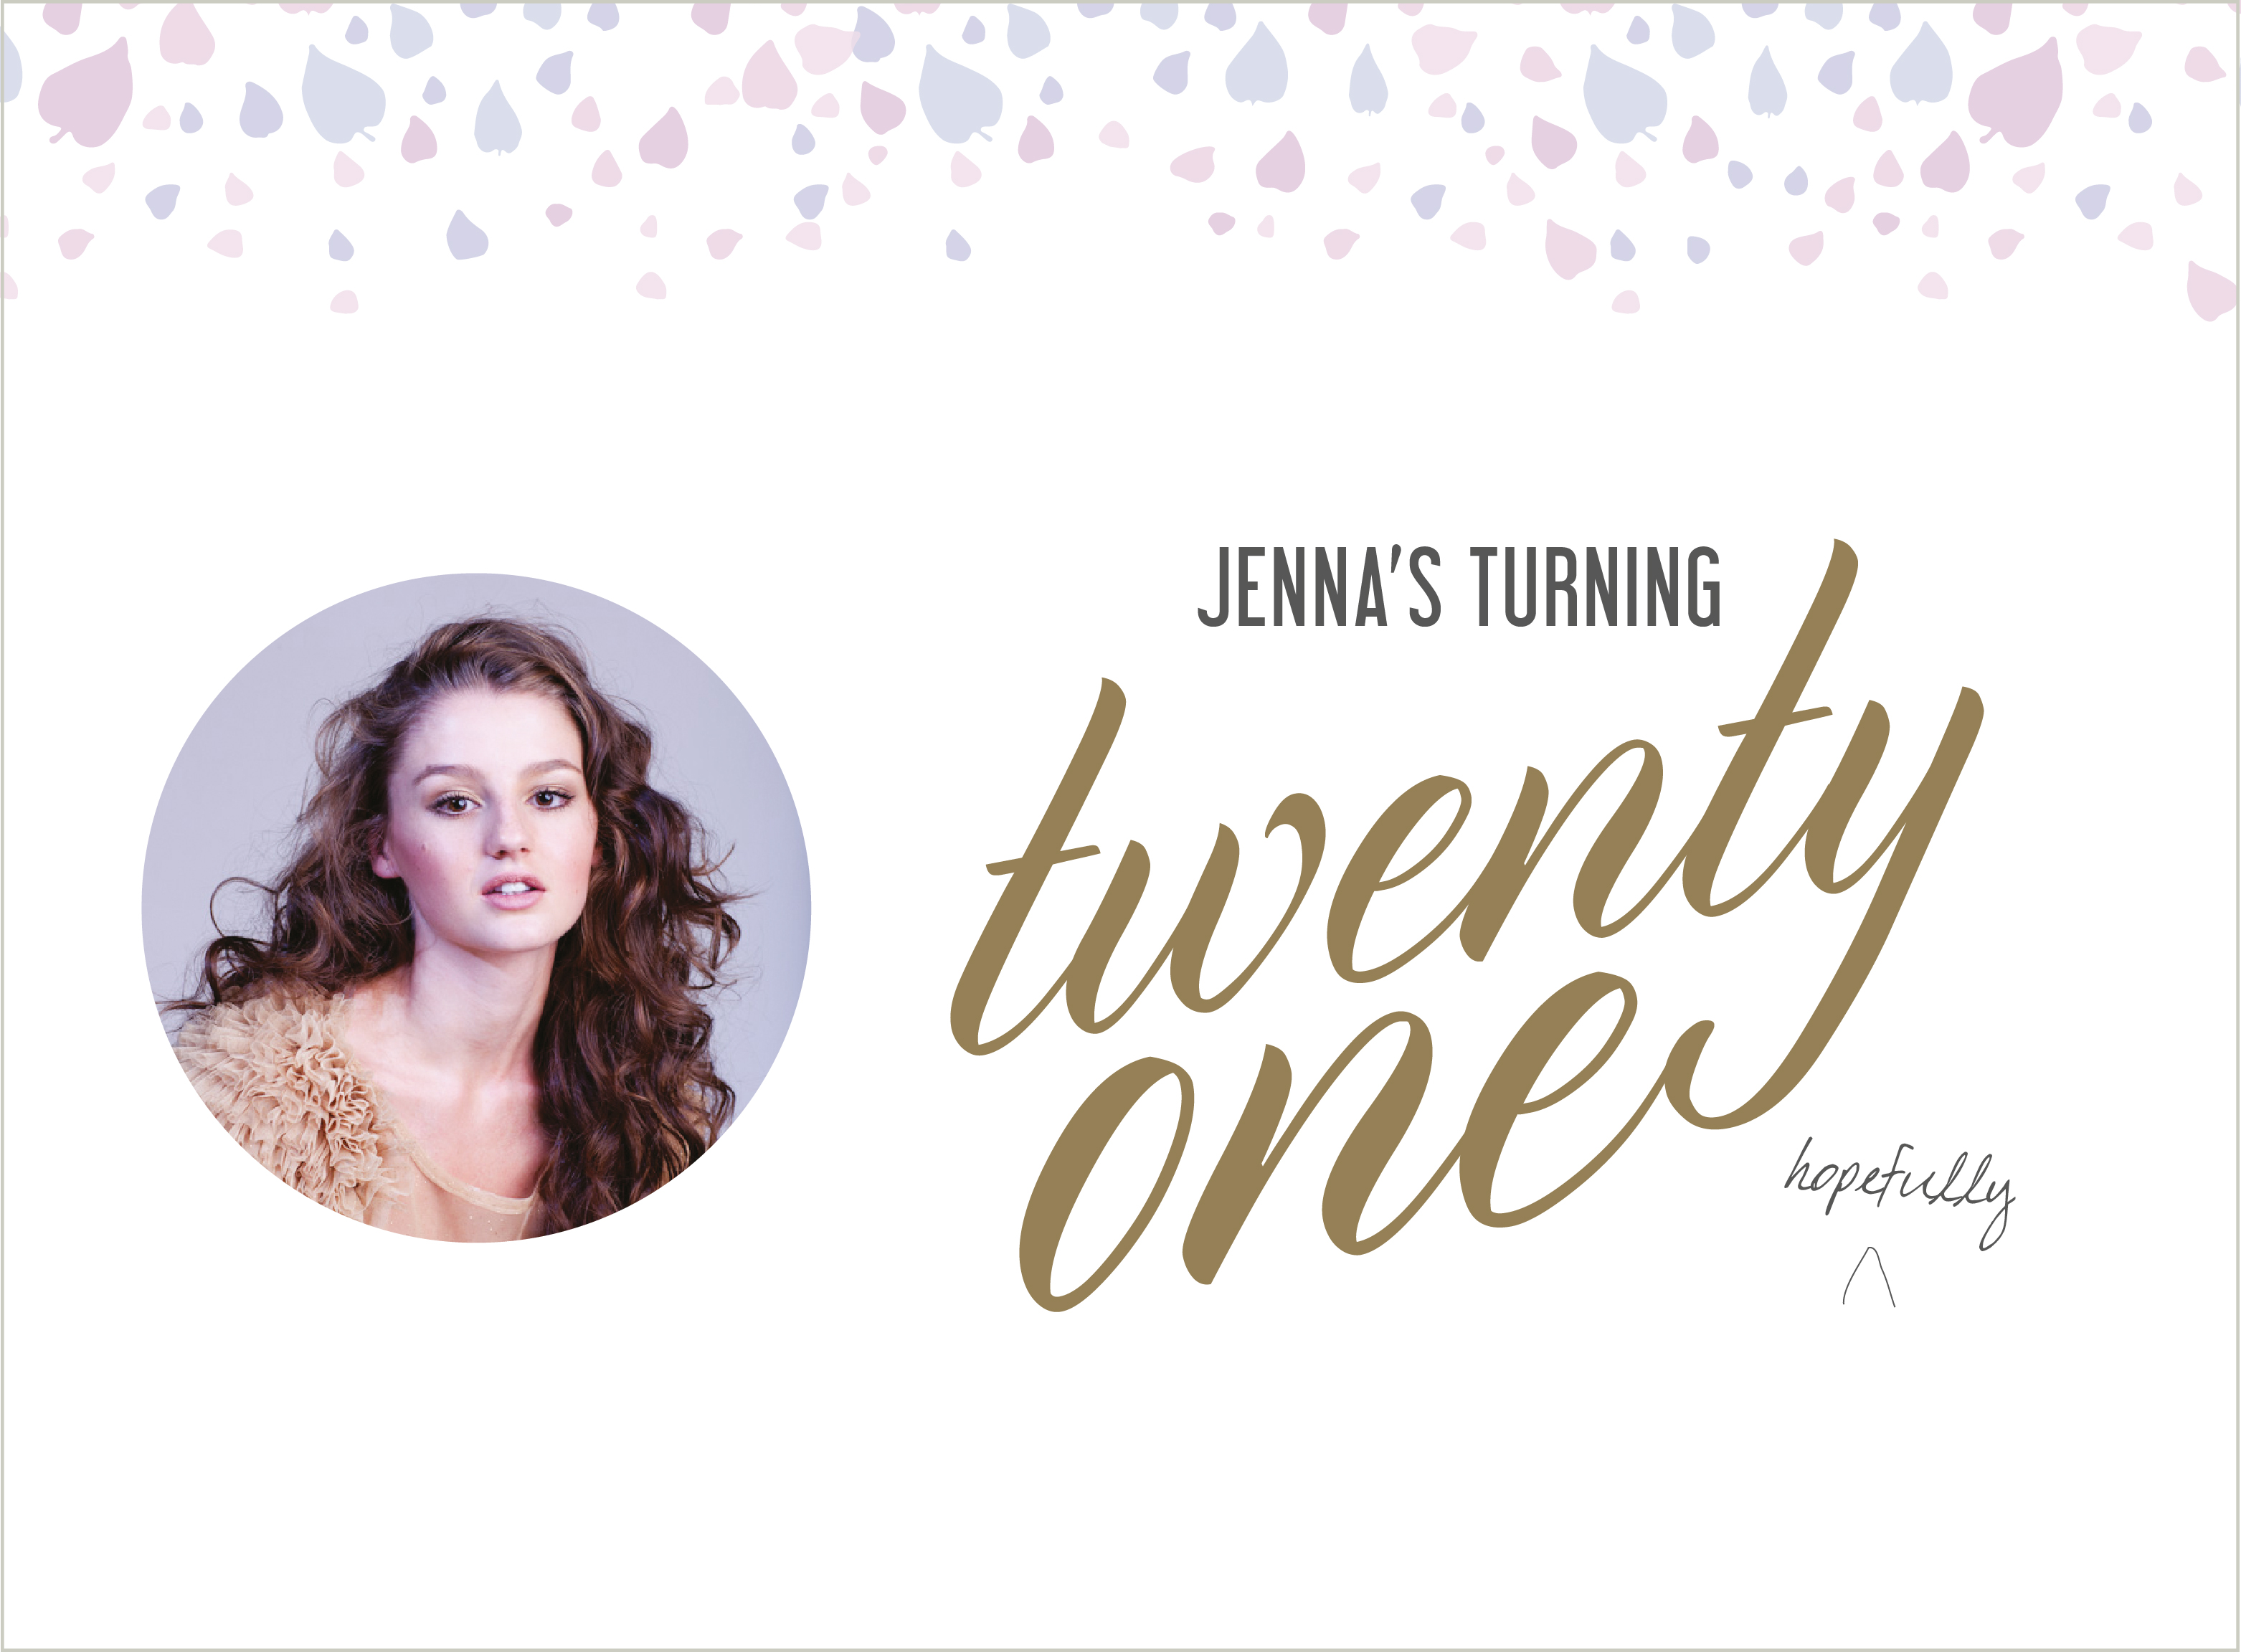 You and everyone you know are invited to Jenna's 21st!